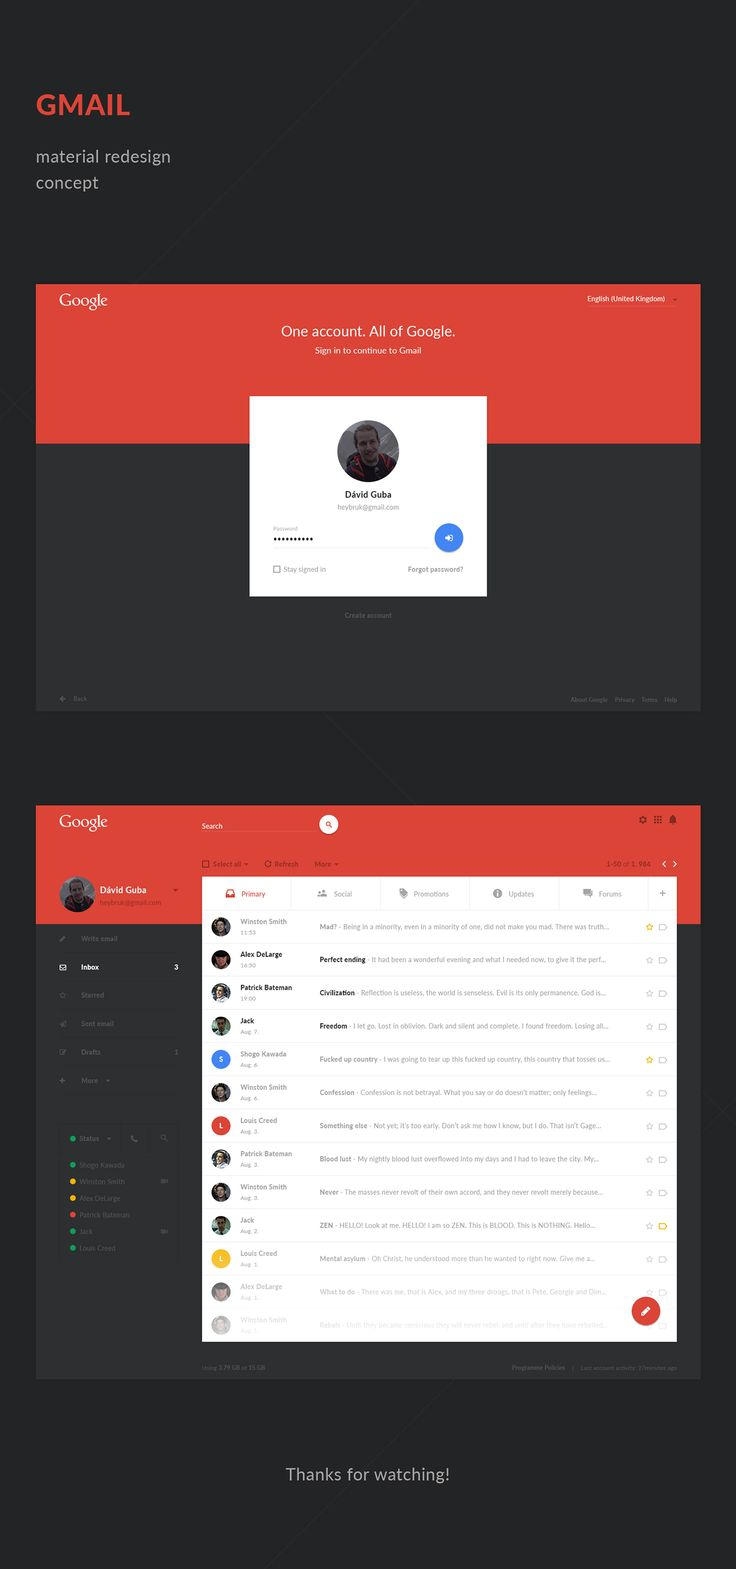 https://www.behance.net/gallery/28562203/Gmail-Material-Redesign-Concept